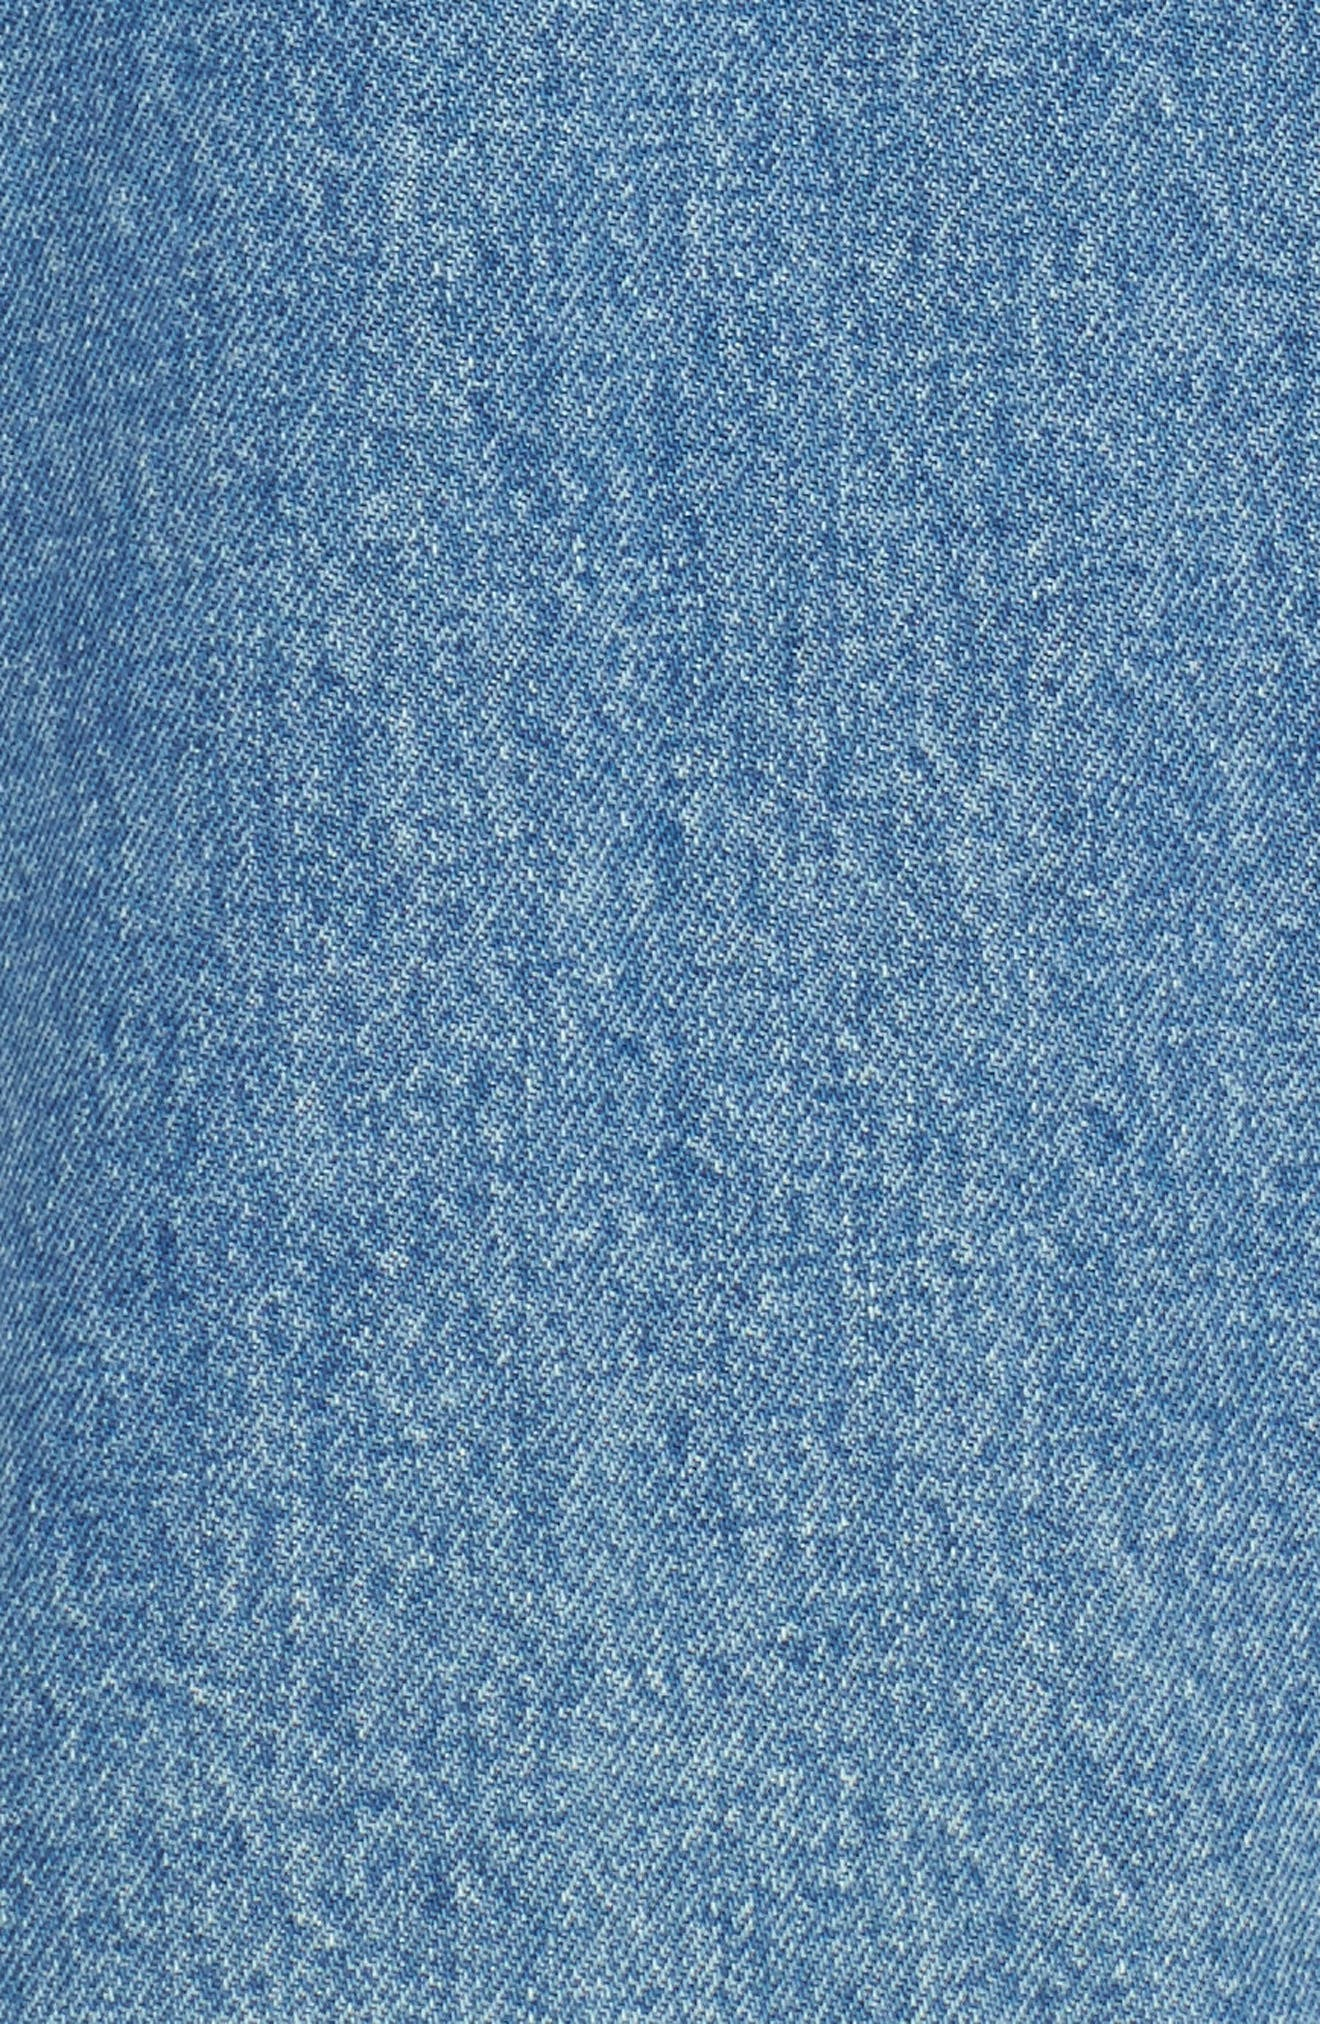 LEVI'S<SUP>®</SUP> MADE & CRAFTED<SUP>™</SUP>,                             Type III Pleated Denim Skirt,                             Alternate thumbnail 6, color,                             400